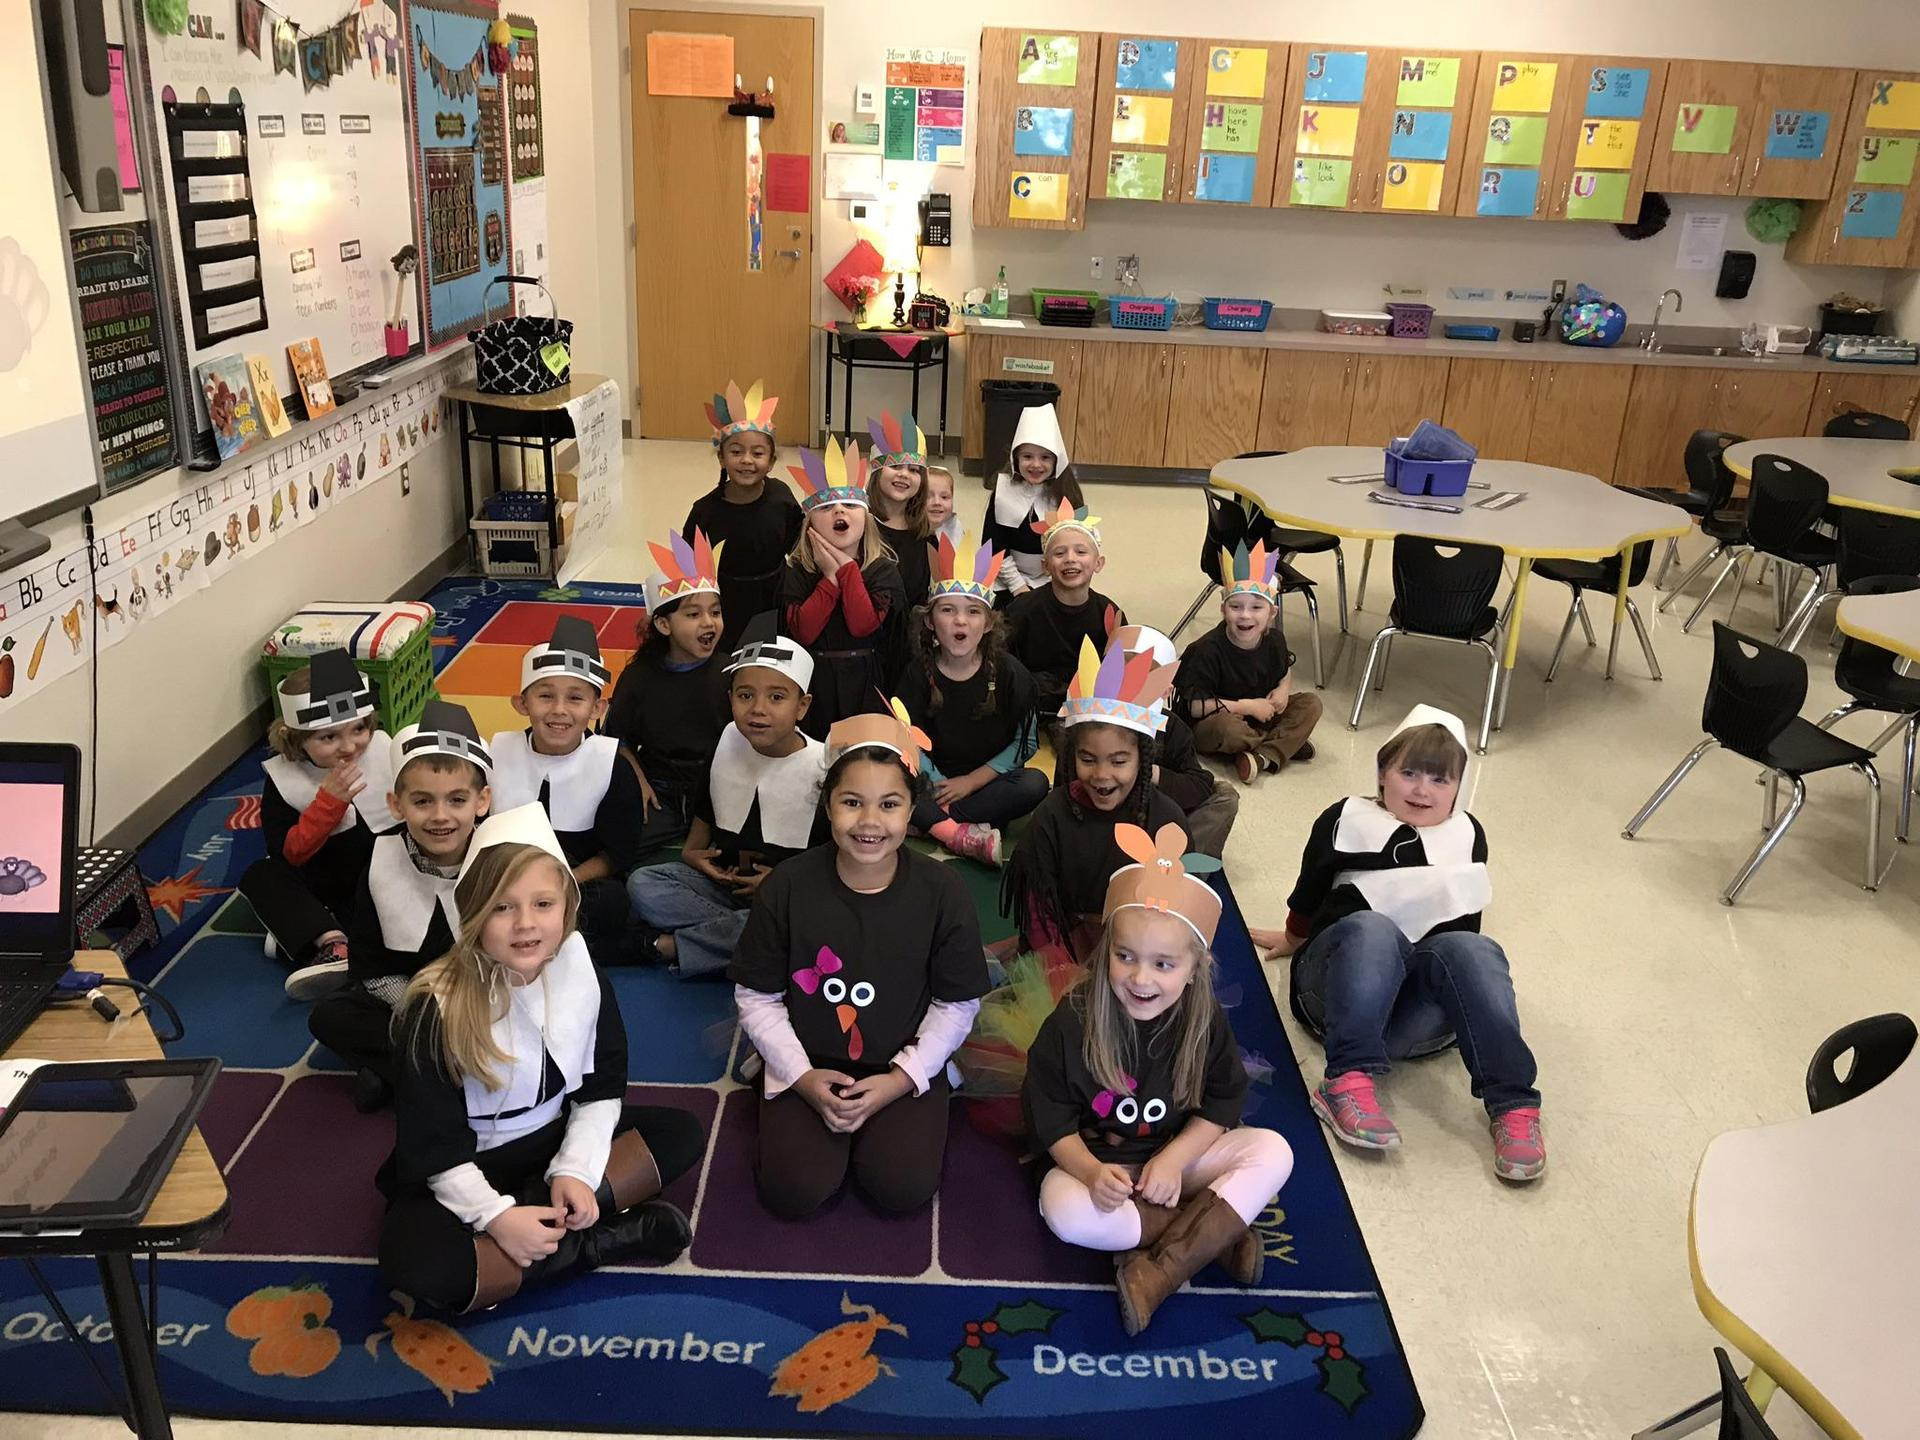 Kindergarten students dressed up as pilgrims and animals for Thanksgiving play.